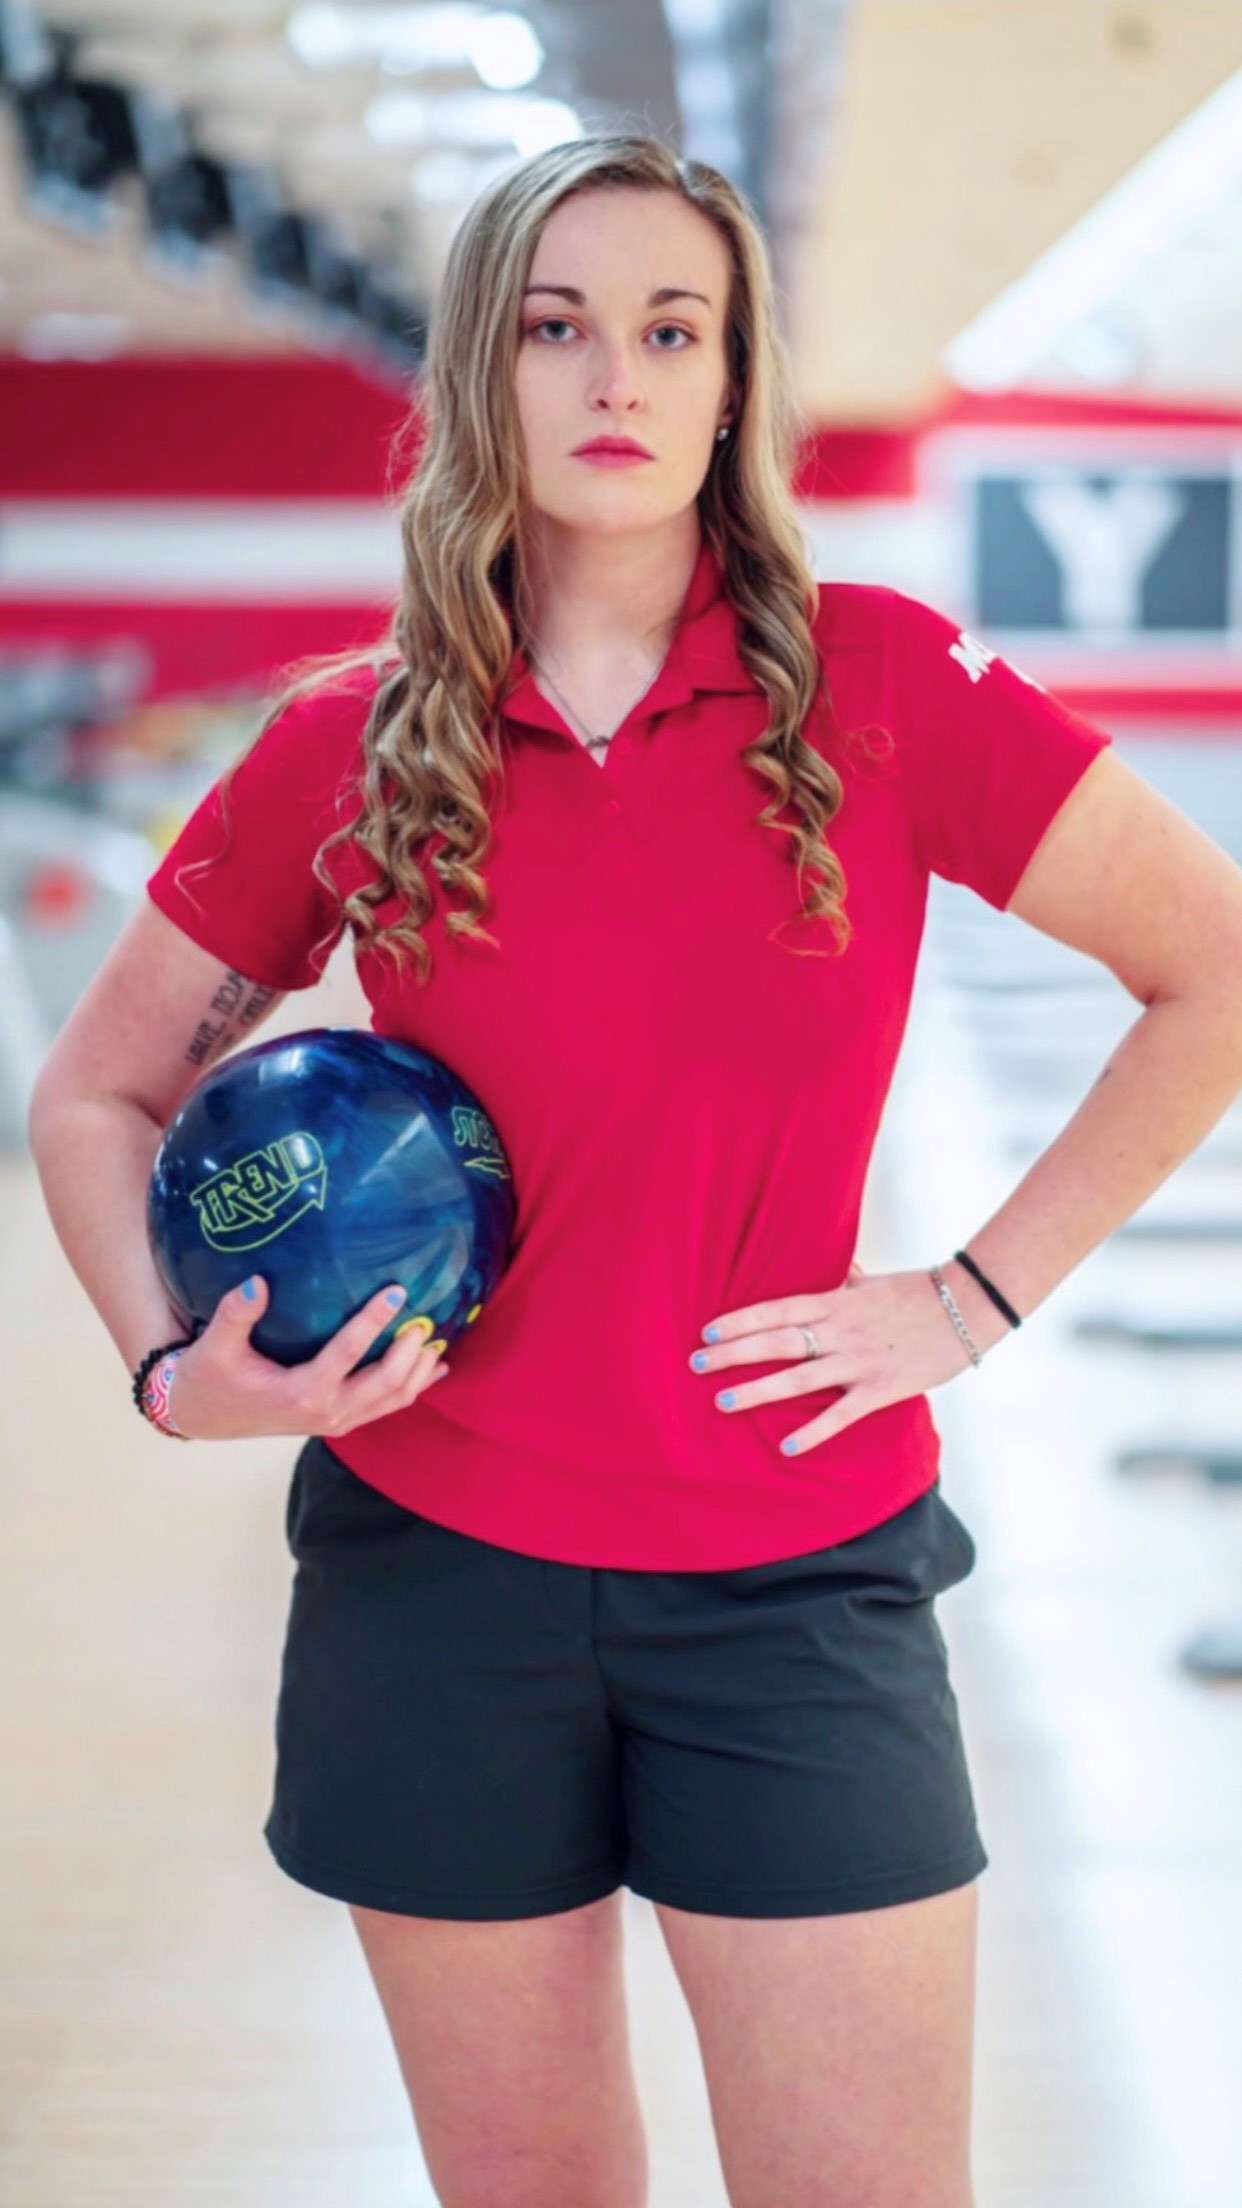 Katie Robb's decision to change balls after the sixth frame turned around the match for her.